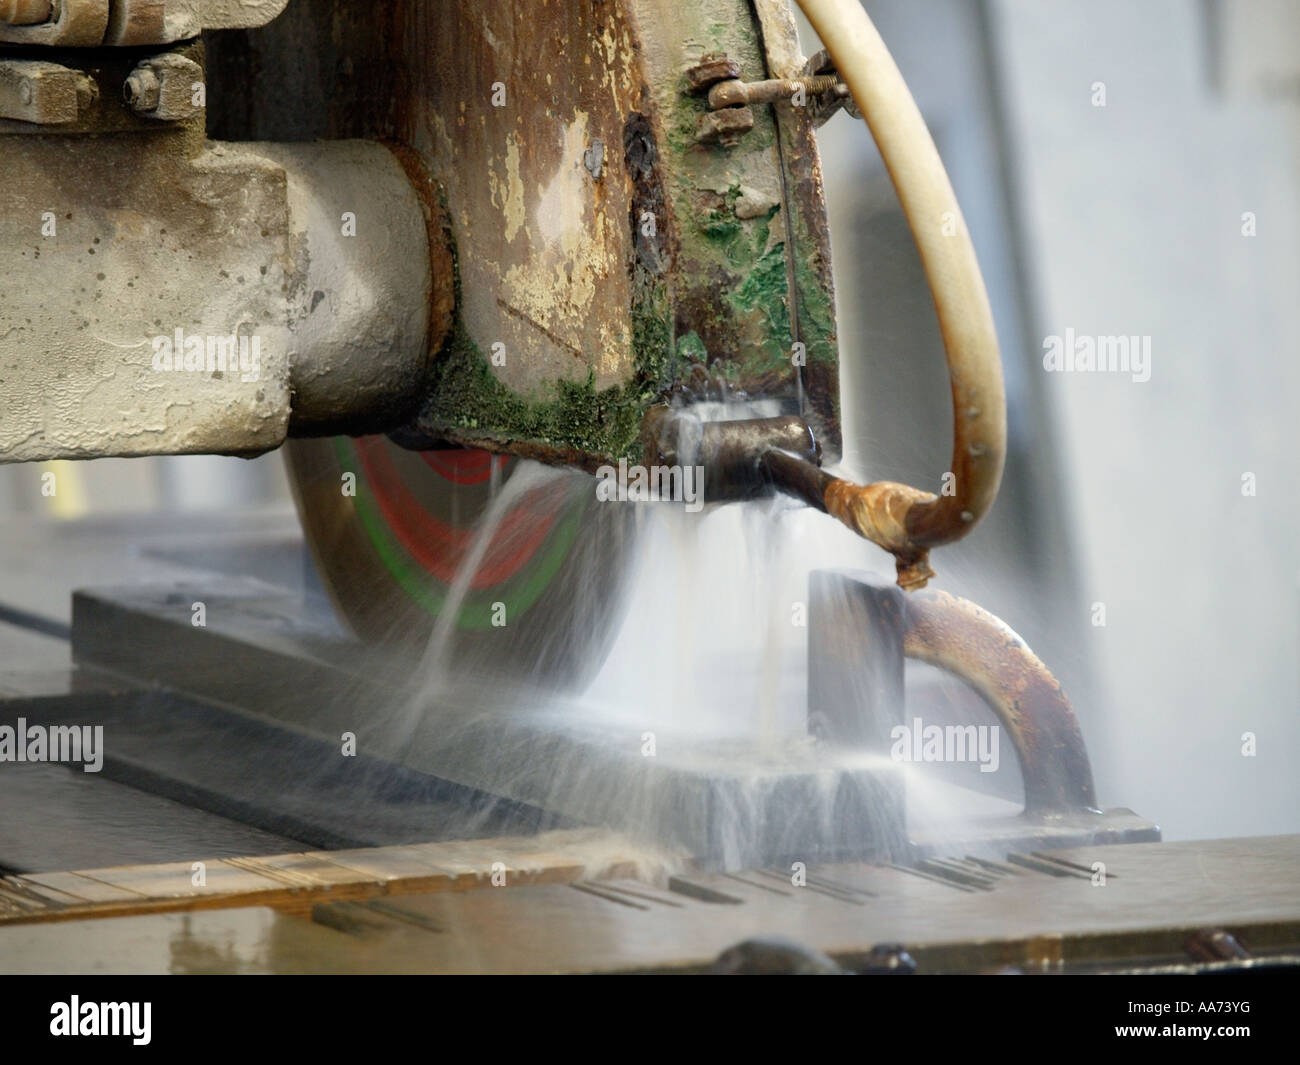 Industrial water cooled circular saw cutting a marble slab closeup - Stock Image